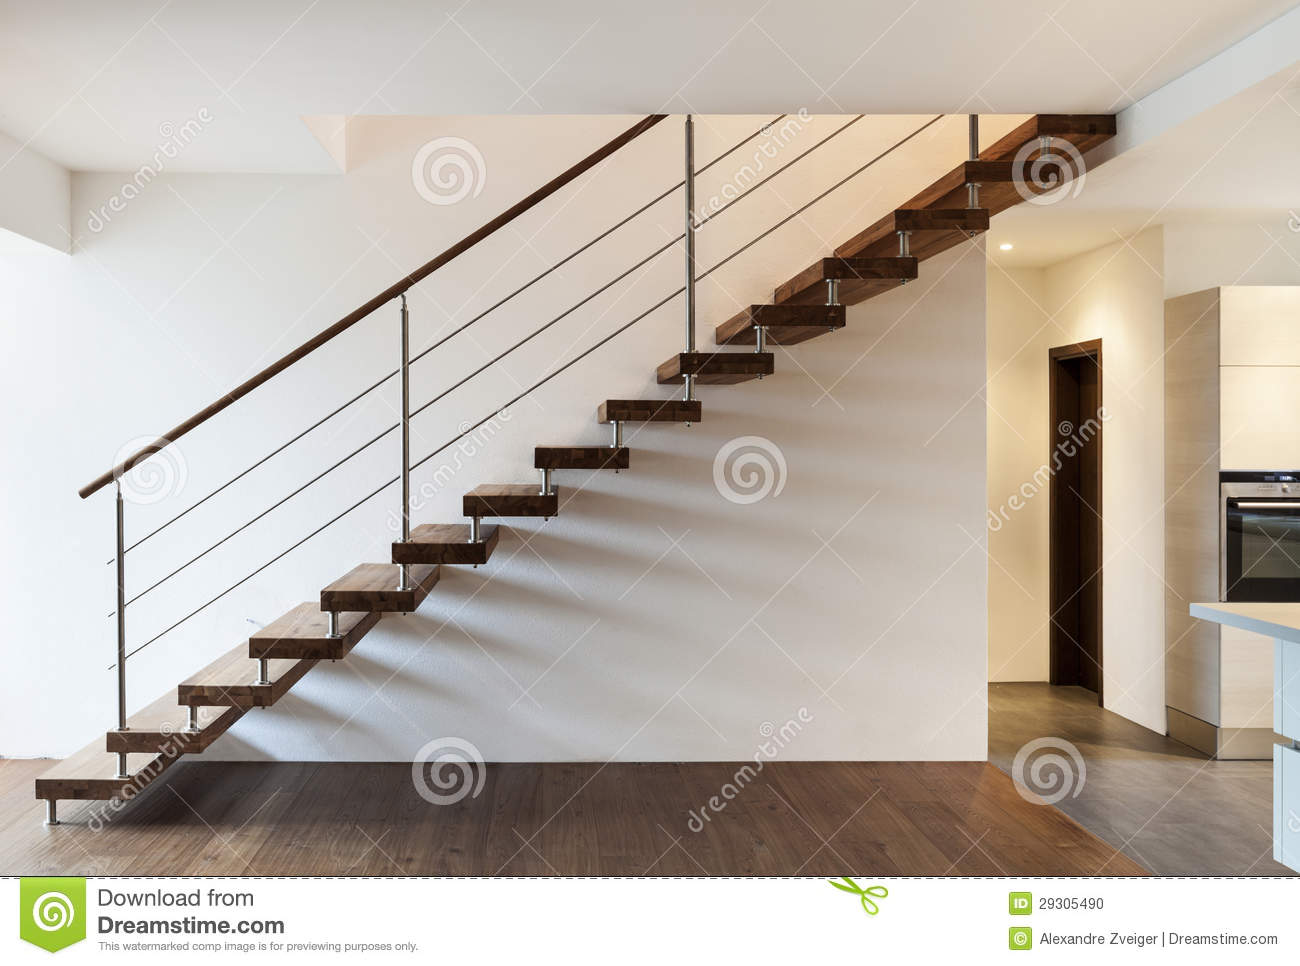 Escalier int rieur photo stock image 29305490 for Photos escalier interieur moderne